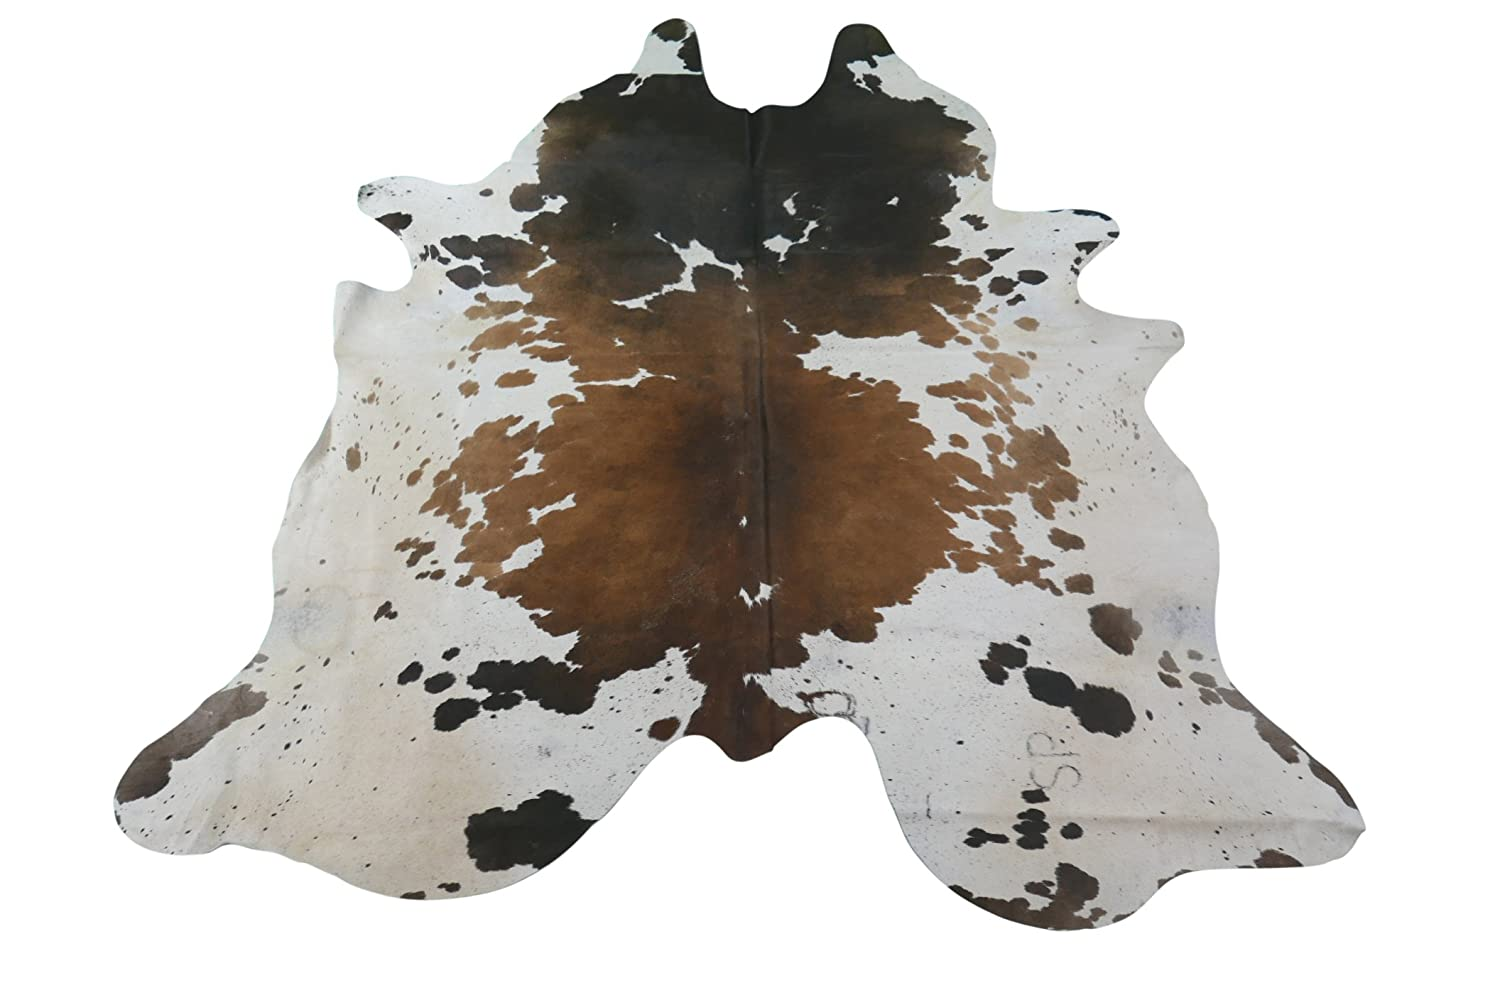 69473effe12 Amazon.com  Longhorn Cowhide Rug Huge Size  8 X 7 ft Brown   White Cowhide  Rug E-921  Kitchen   Dining